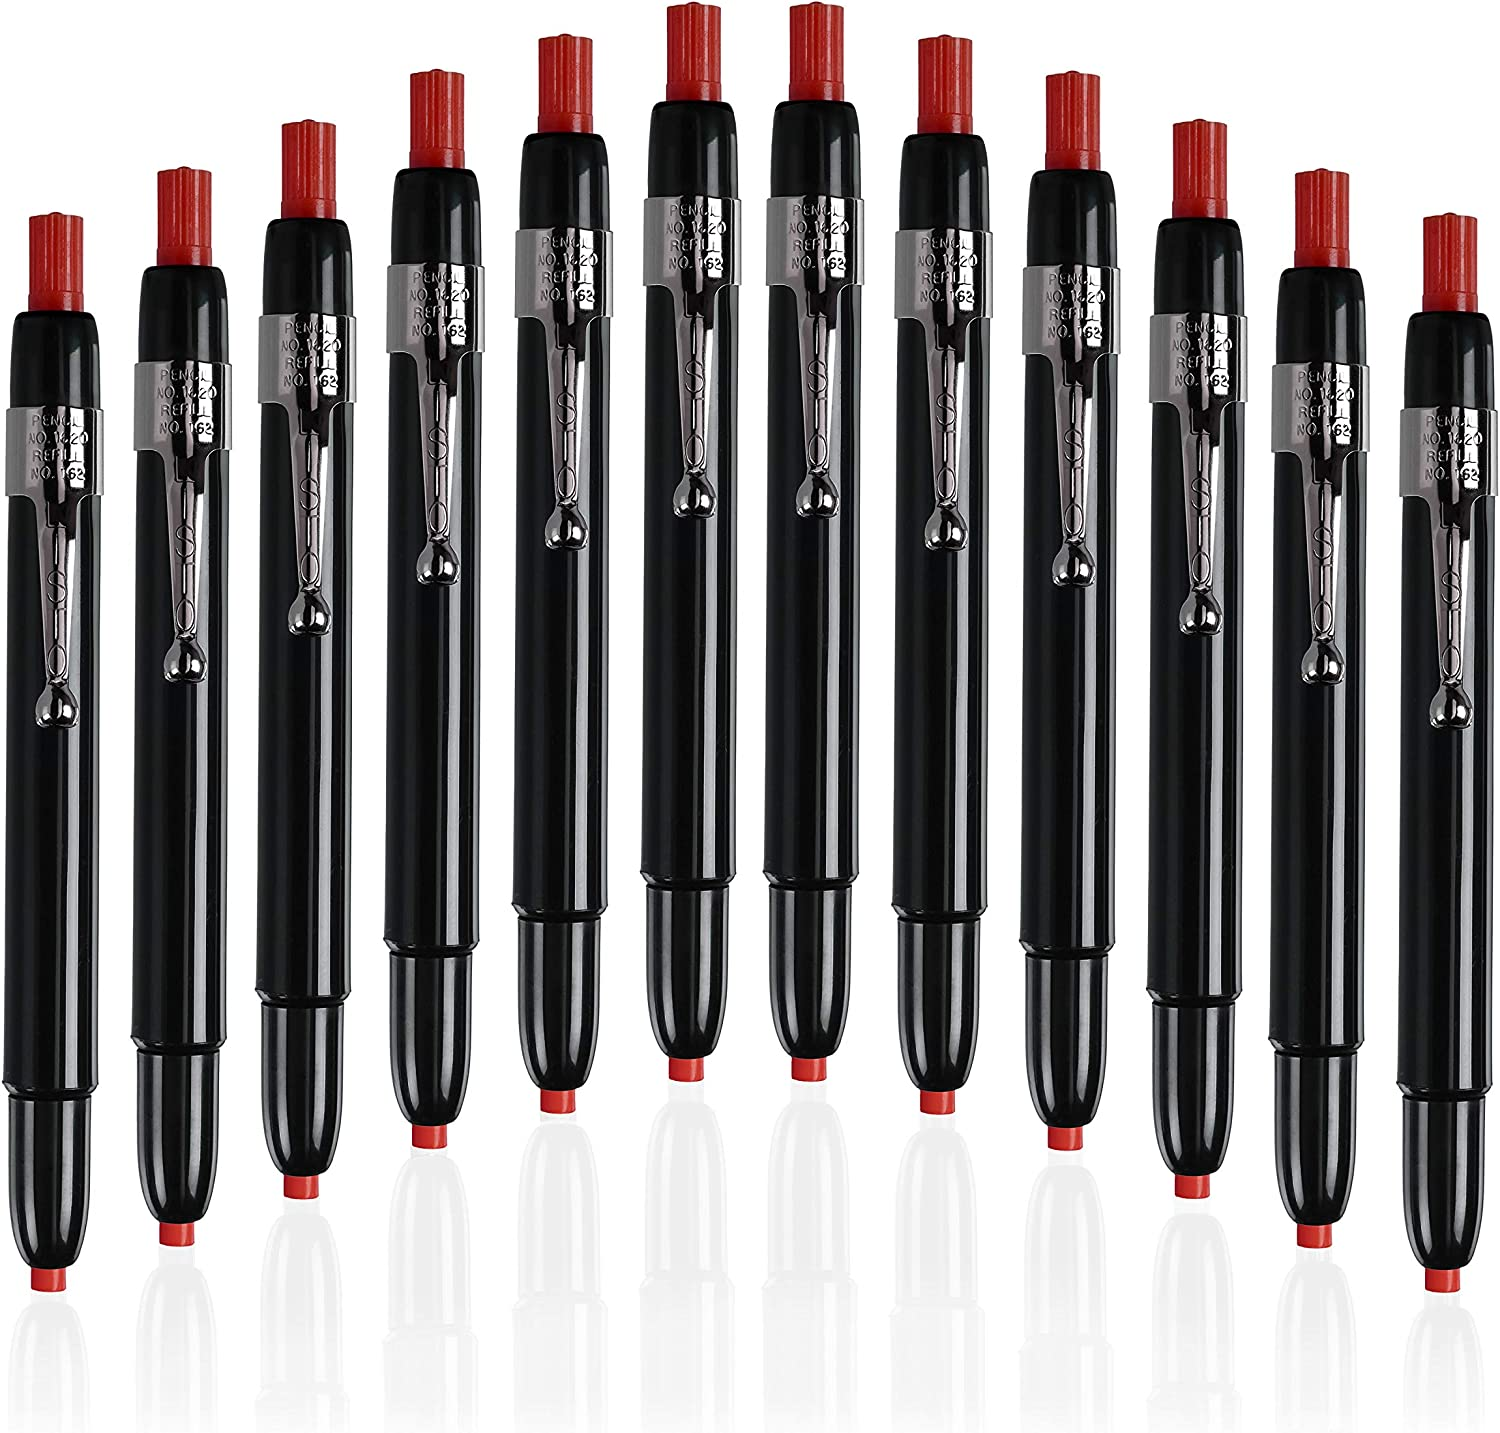 Listo 1620 - Box of 12 - RED COLOR - China Markers/Grease Pencils/China Marking Pencils/Wax Pencils : Mechanical Pencils : Office Products